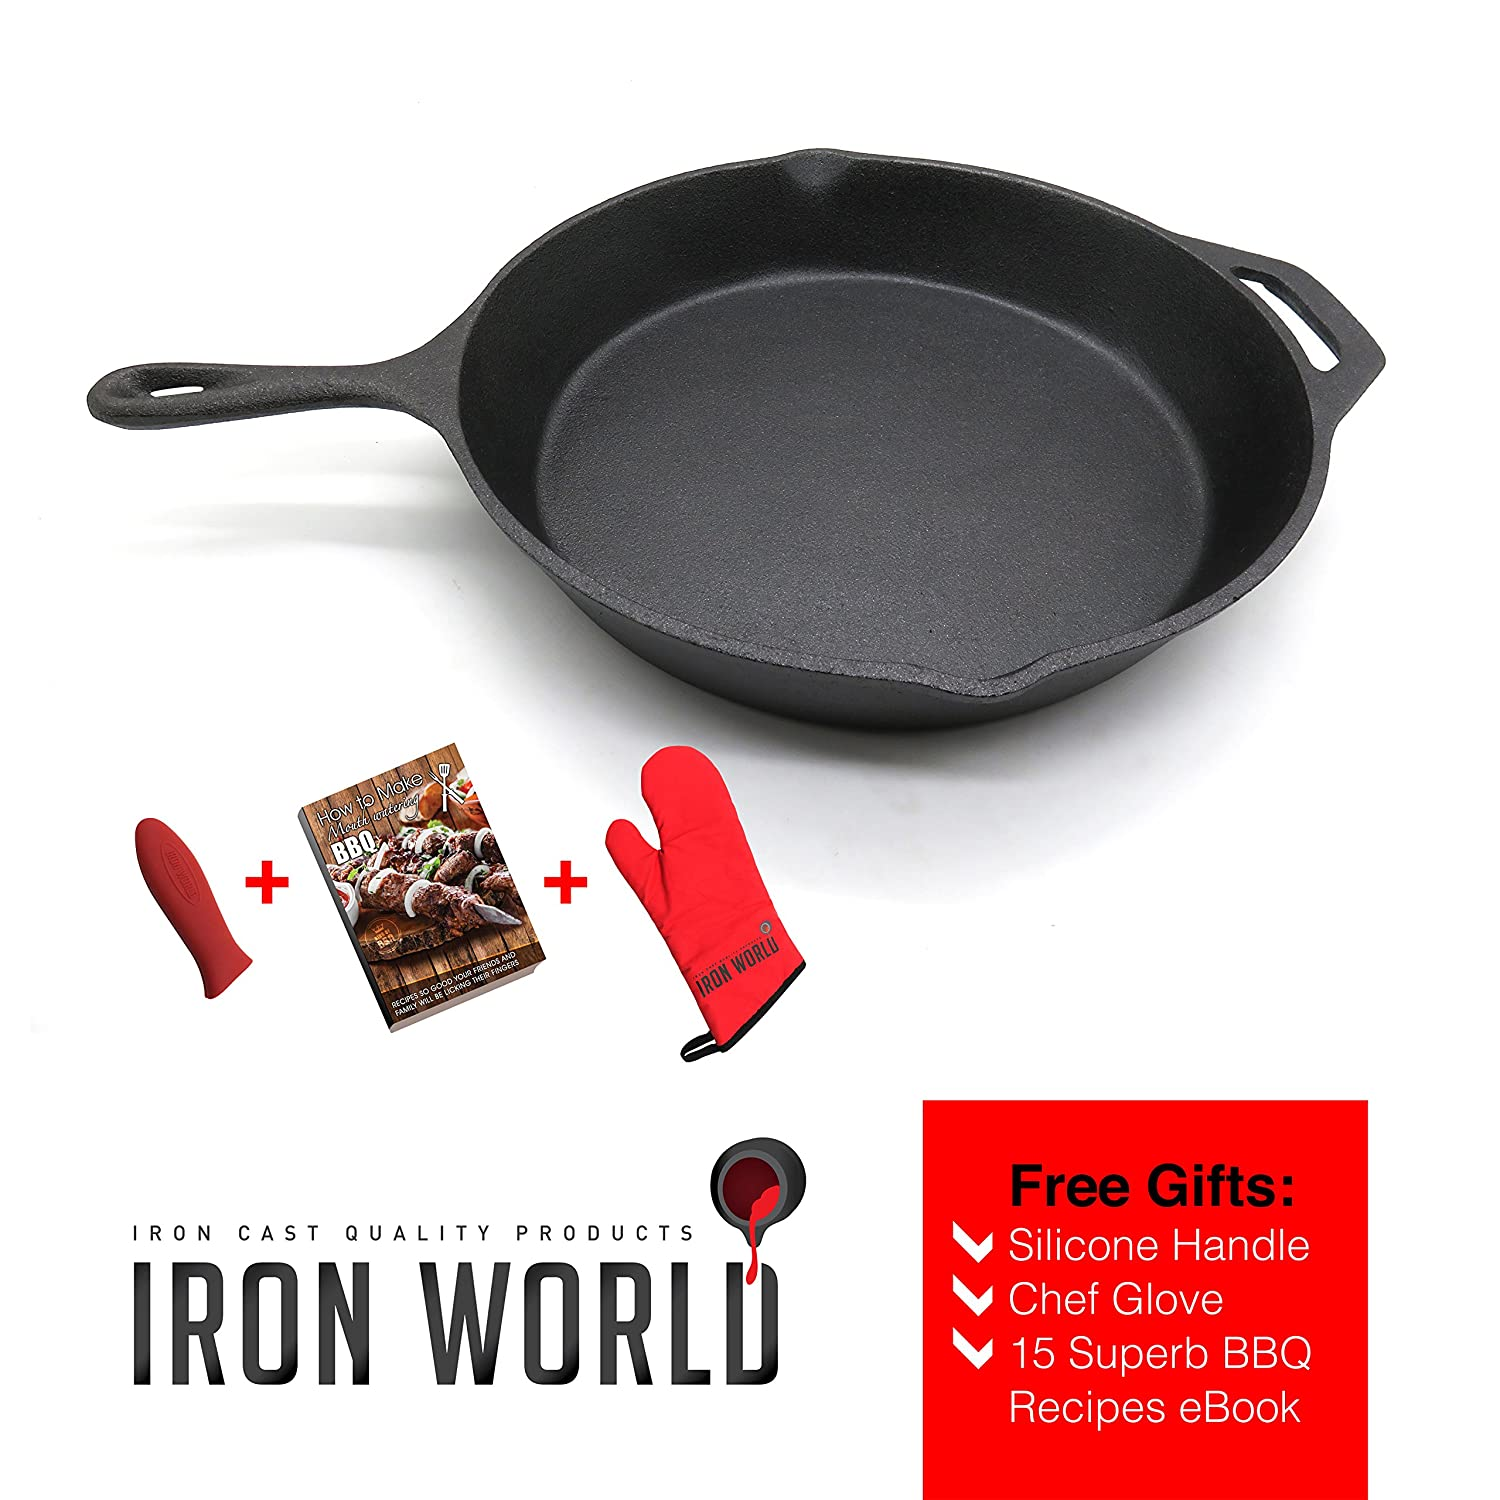 Iron World Cast Iron Skillet Pan - 12 Inch Pre Seasoned Round Frying Pan With Silicone Handle Holder for Grill Stove And Oven. Great for Meat Fish Chicken Steak Frittata Tortilla Egg and Crepe SYNCHKG102875